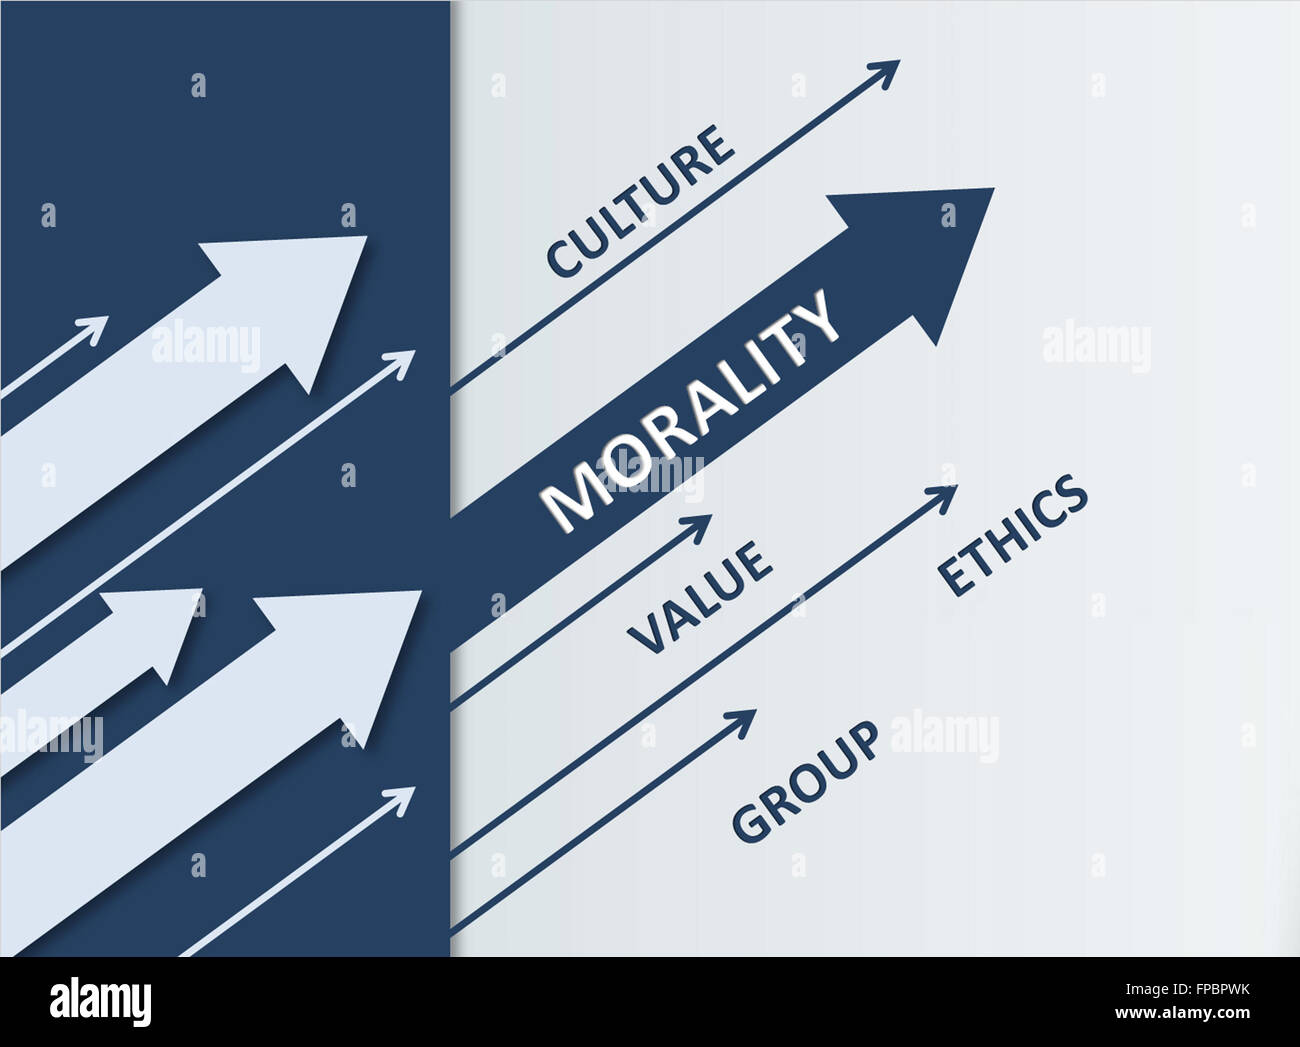 Morality Concept Design- Assorted Dark and Light Arrows Heading Upper Left with Culture, Value, Group and Ethics - Stock Image